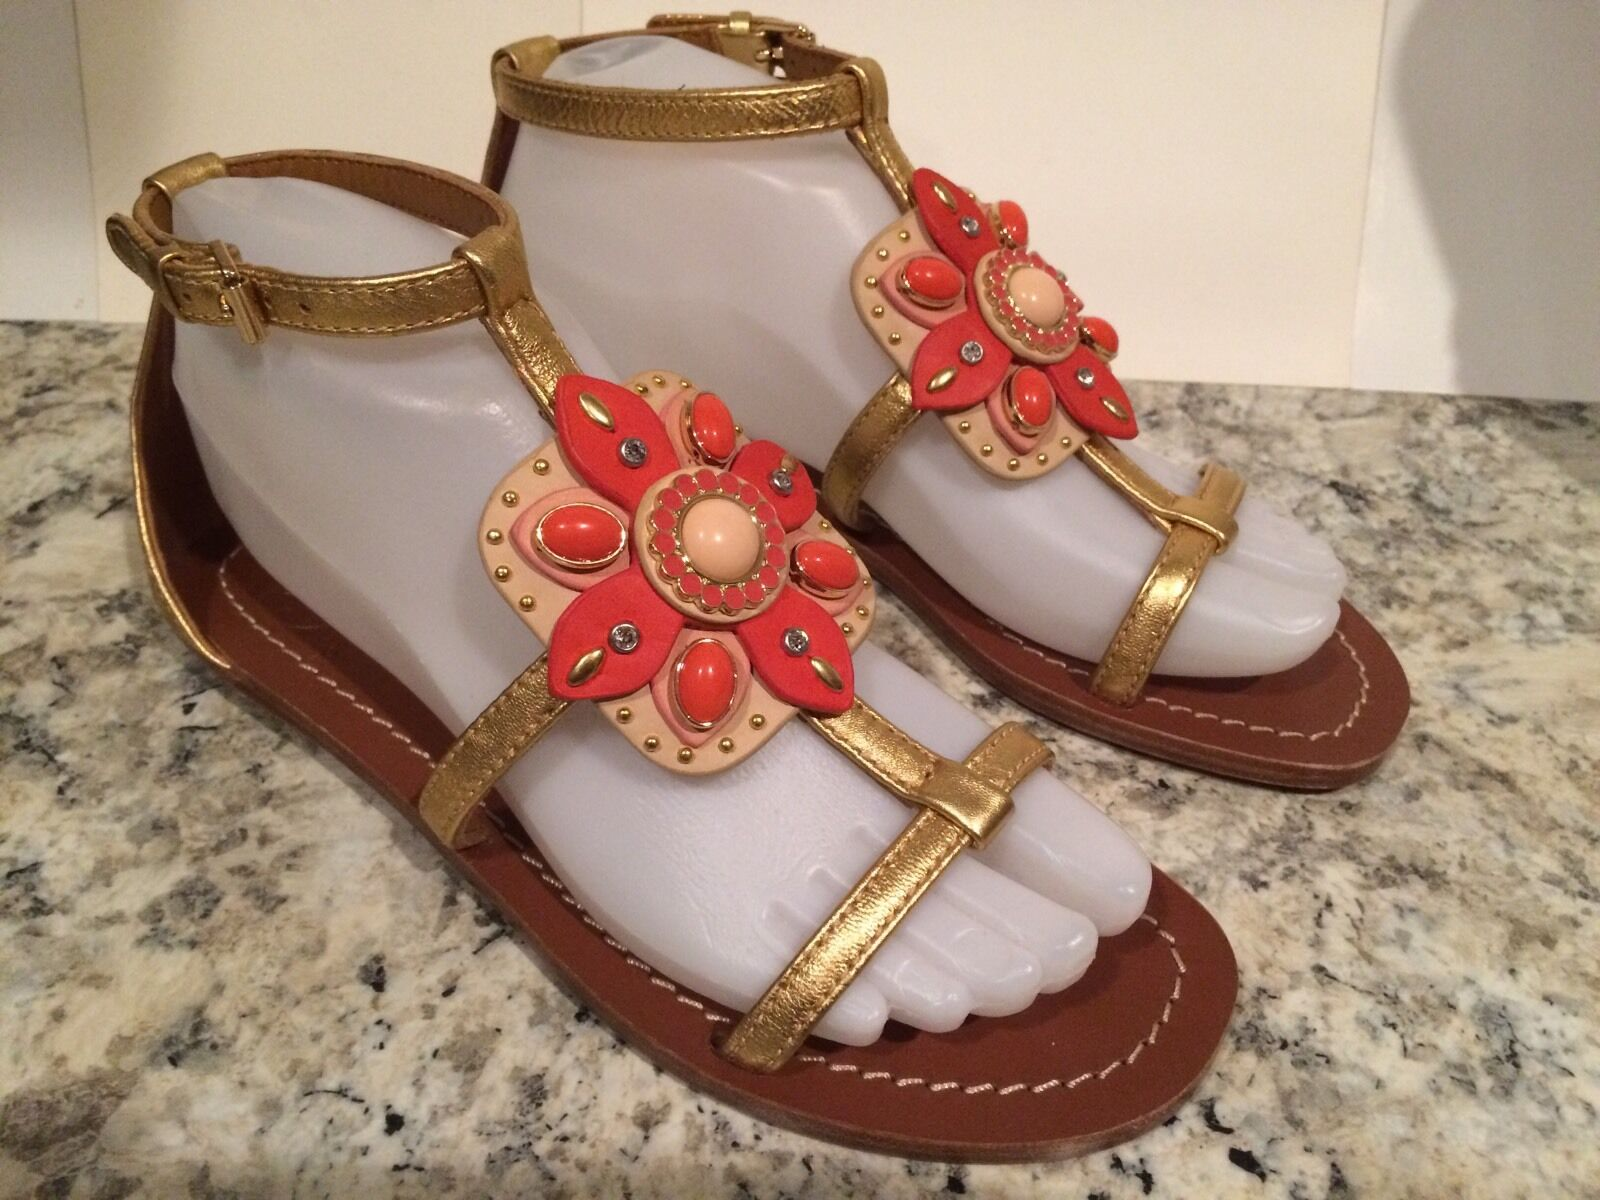 Tory Burch Maura Sandals Flat Leather Leather Leather Jeweled gold Cream Coral 6.5 M New  295 b8253f